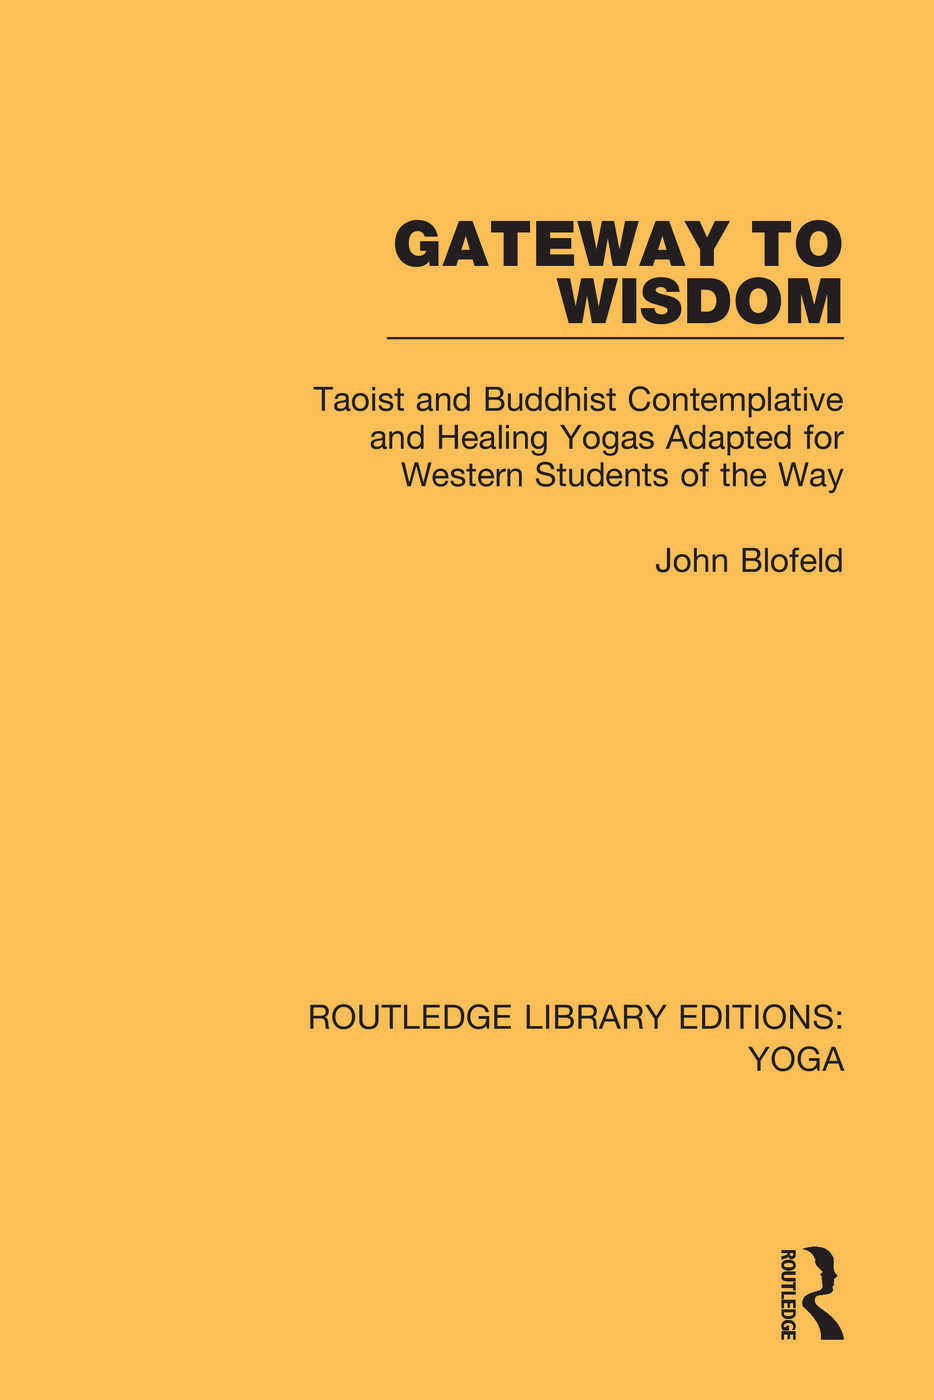 Gateway to Wisdom: Taoist and Buddhist Contemplative and Healing Yogas Adapted for Western Students of the Way book cover